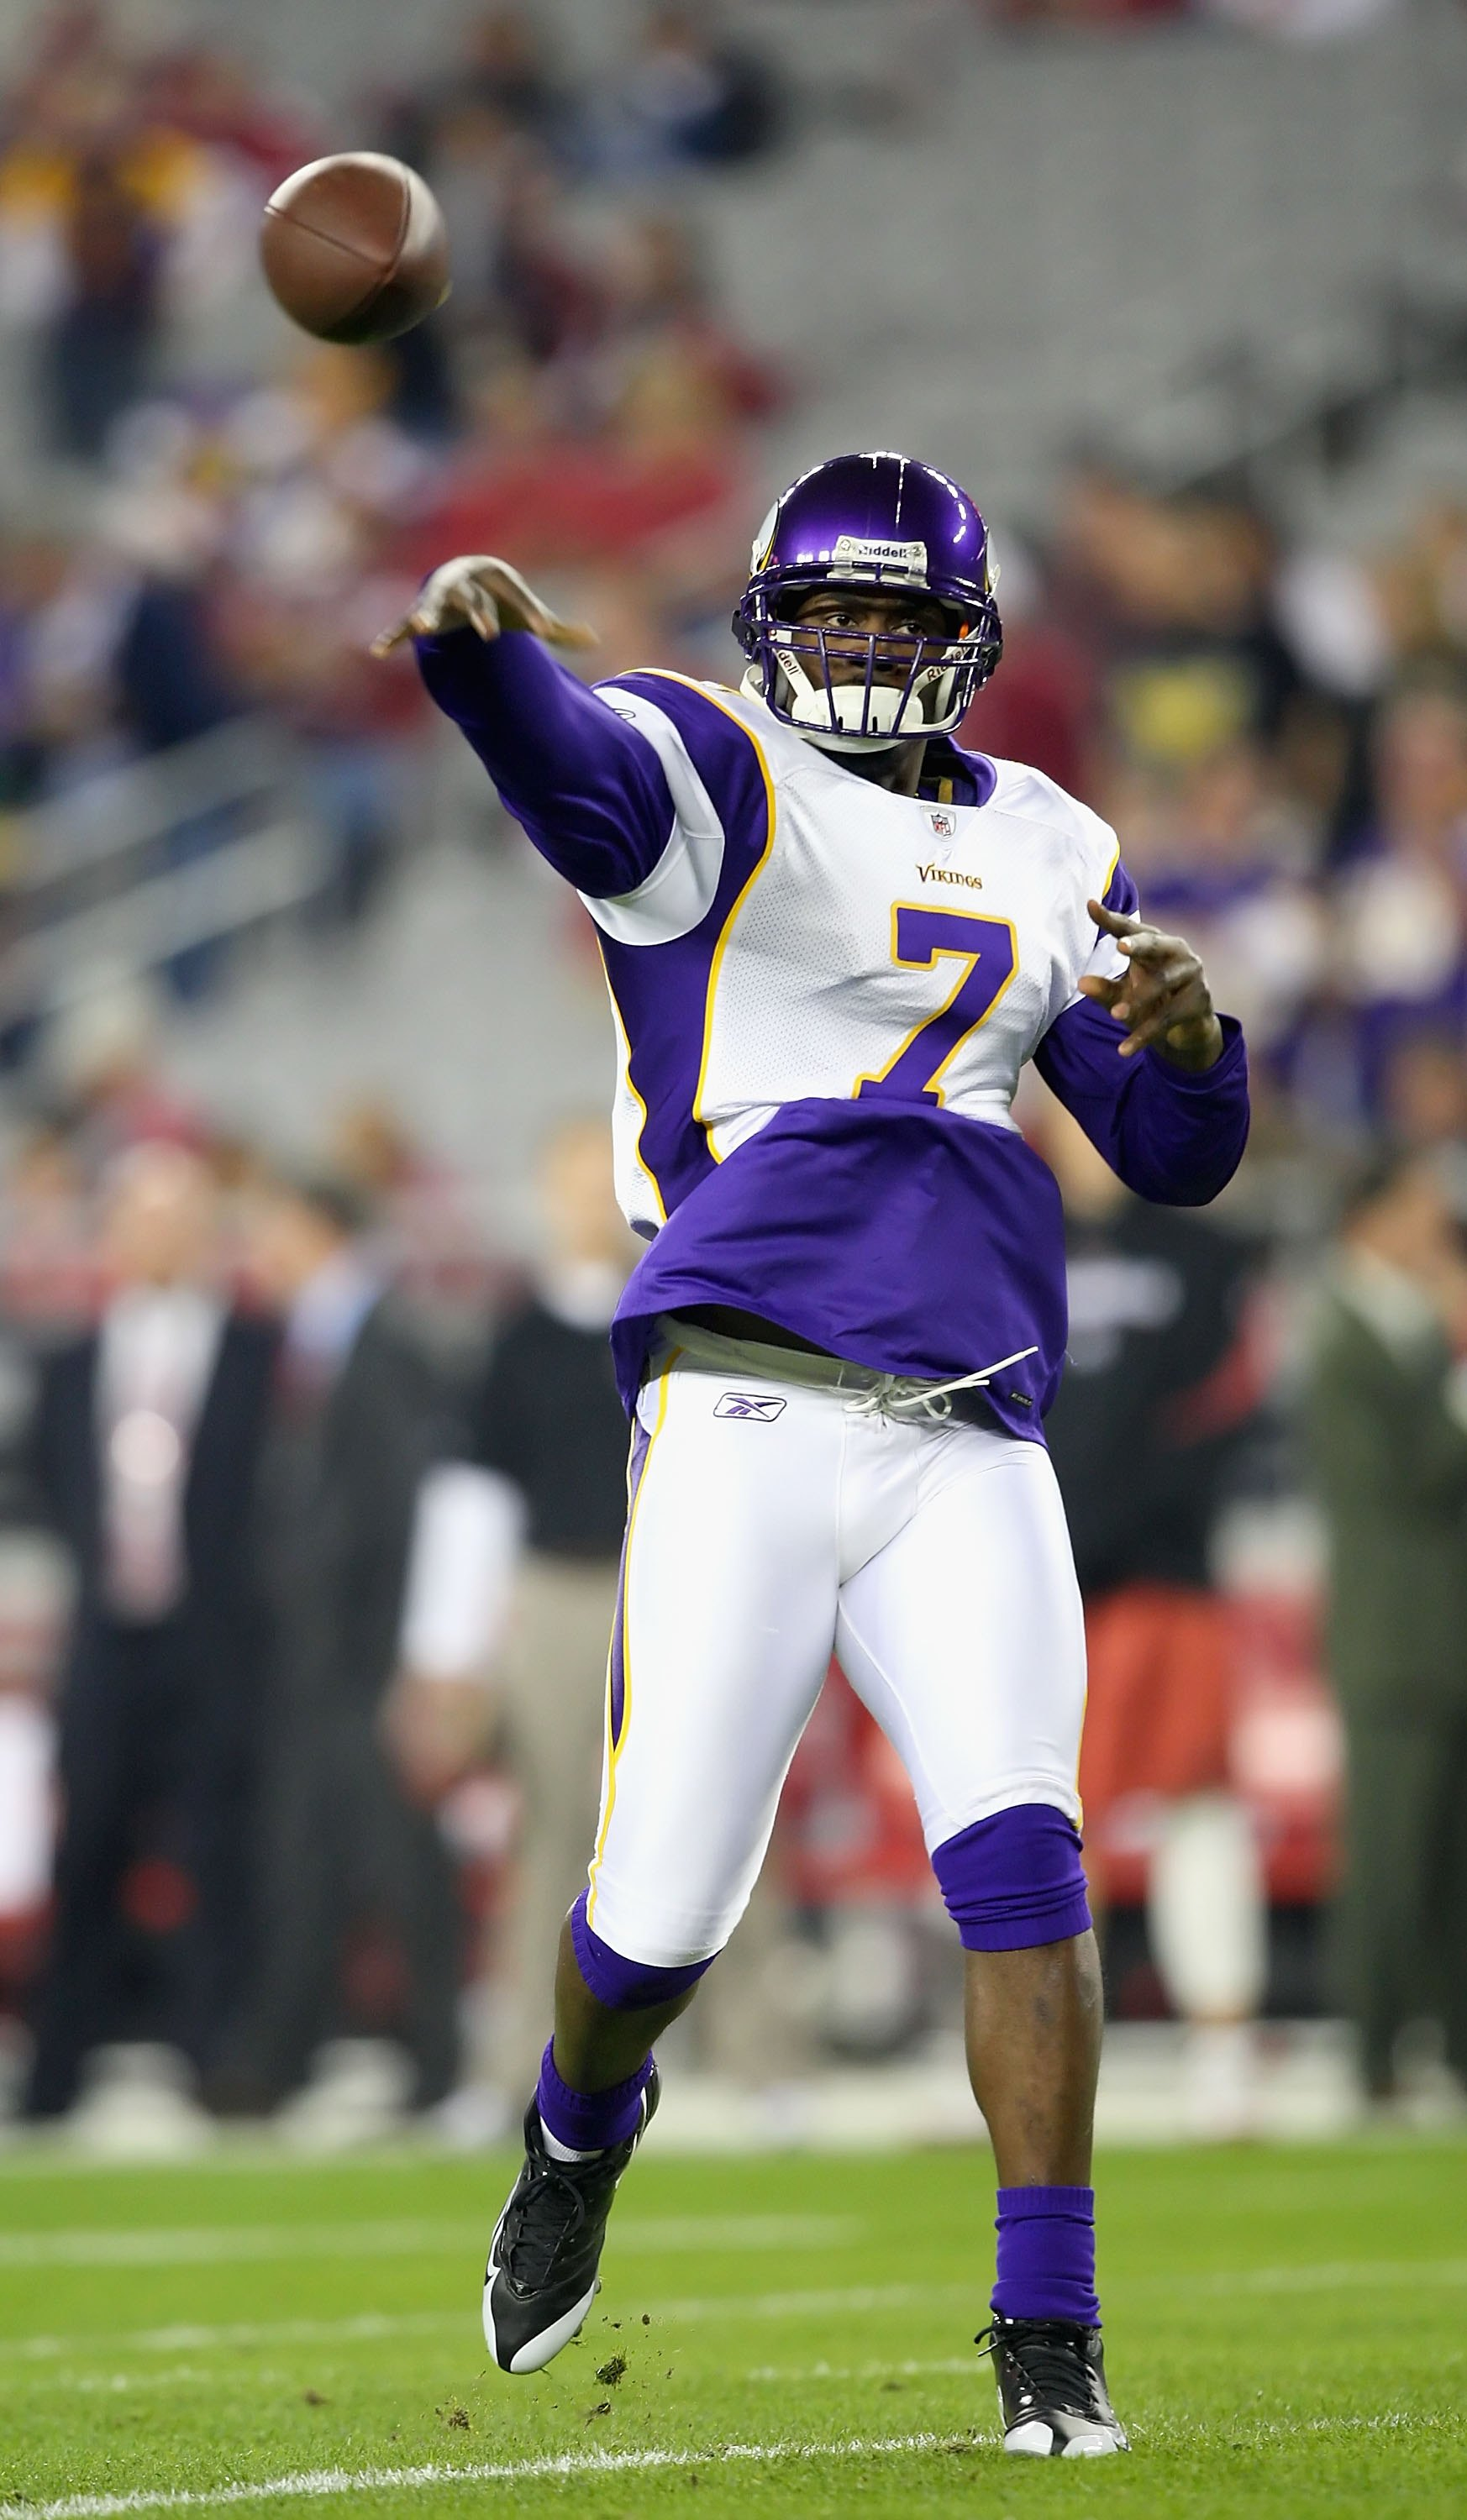 GLENDALE, AZ - DECEMBER 06:  Quarterback Tarvaris Jackson #7 of the Minnesota Vikings warms up before the NFL game against the Arizona Cardinals at the Universtity of Phoenix Stadium on December 6, 2009 in Glendale, Arizona.  The Cardinals defeated the Vi